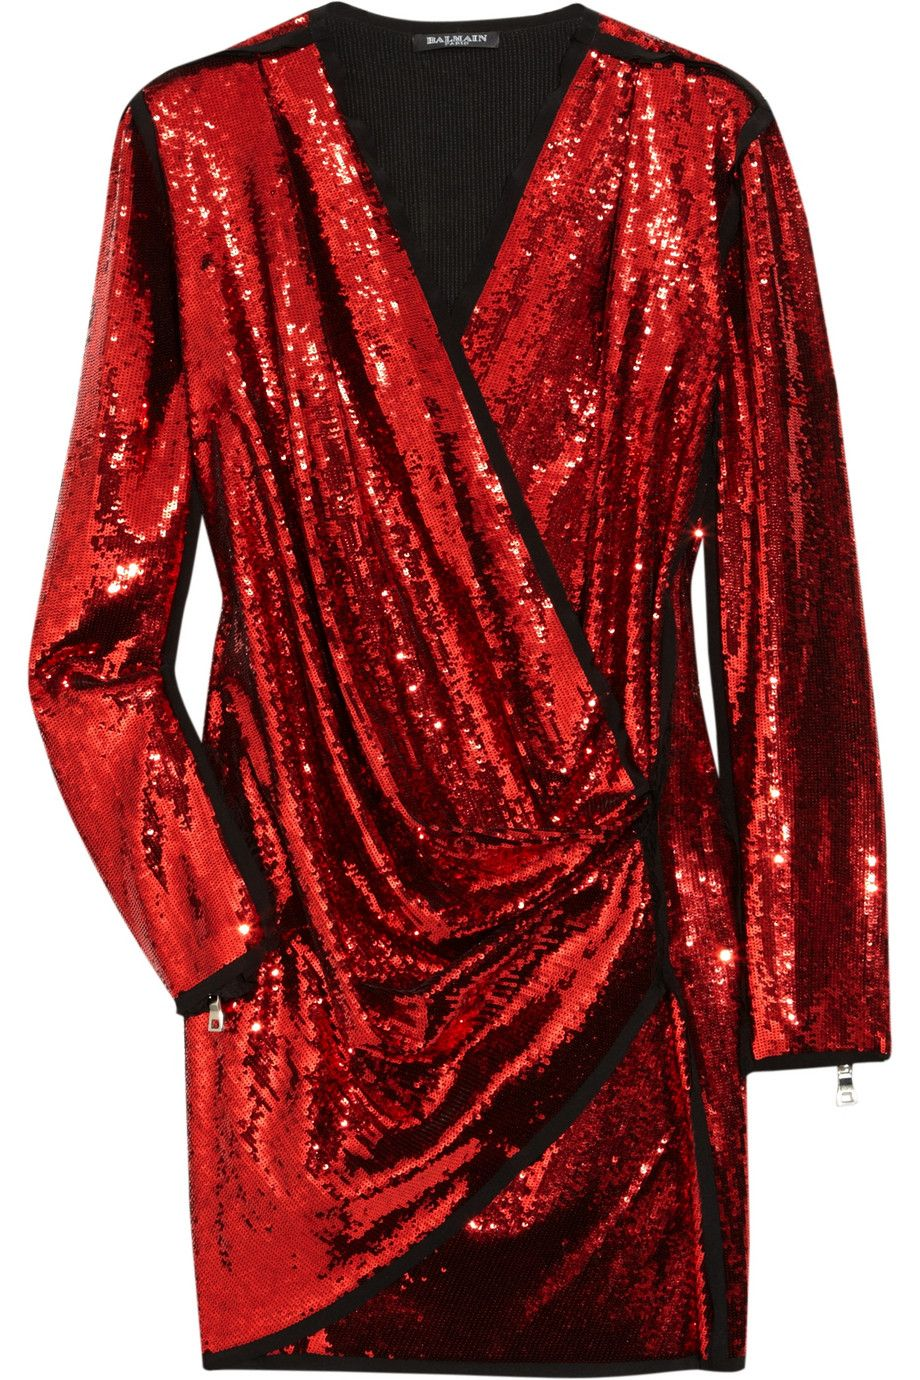 Balmain Red Sequin Dress